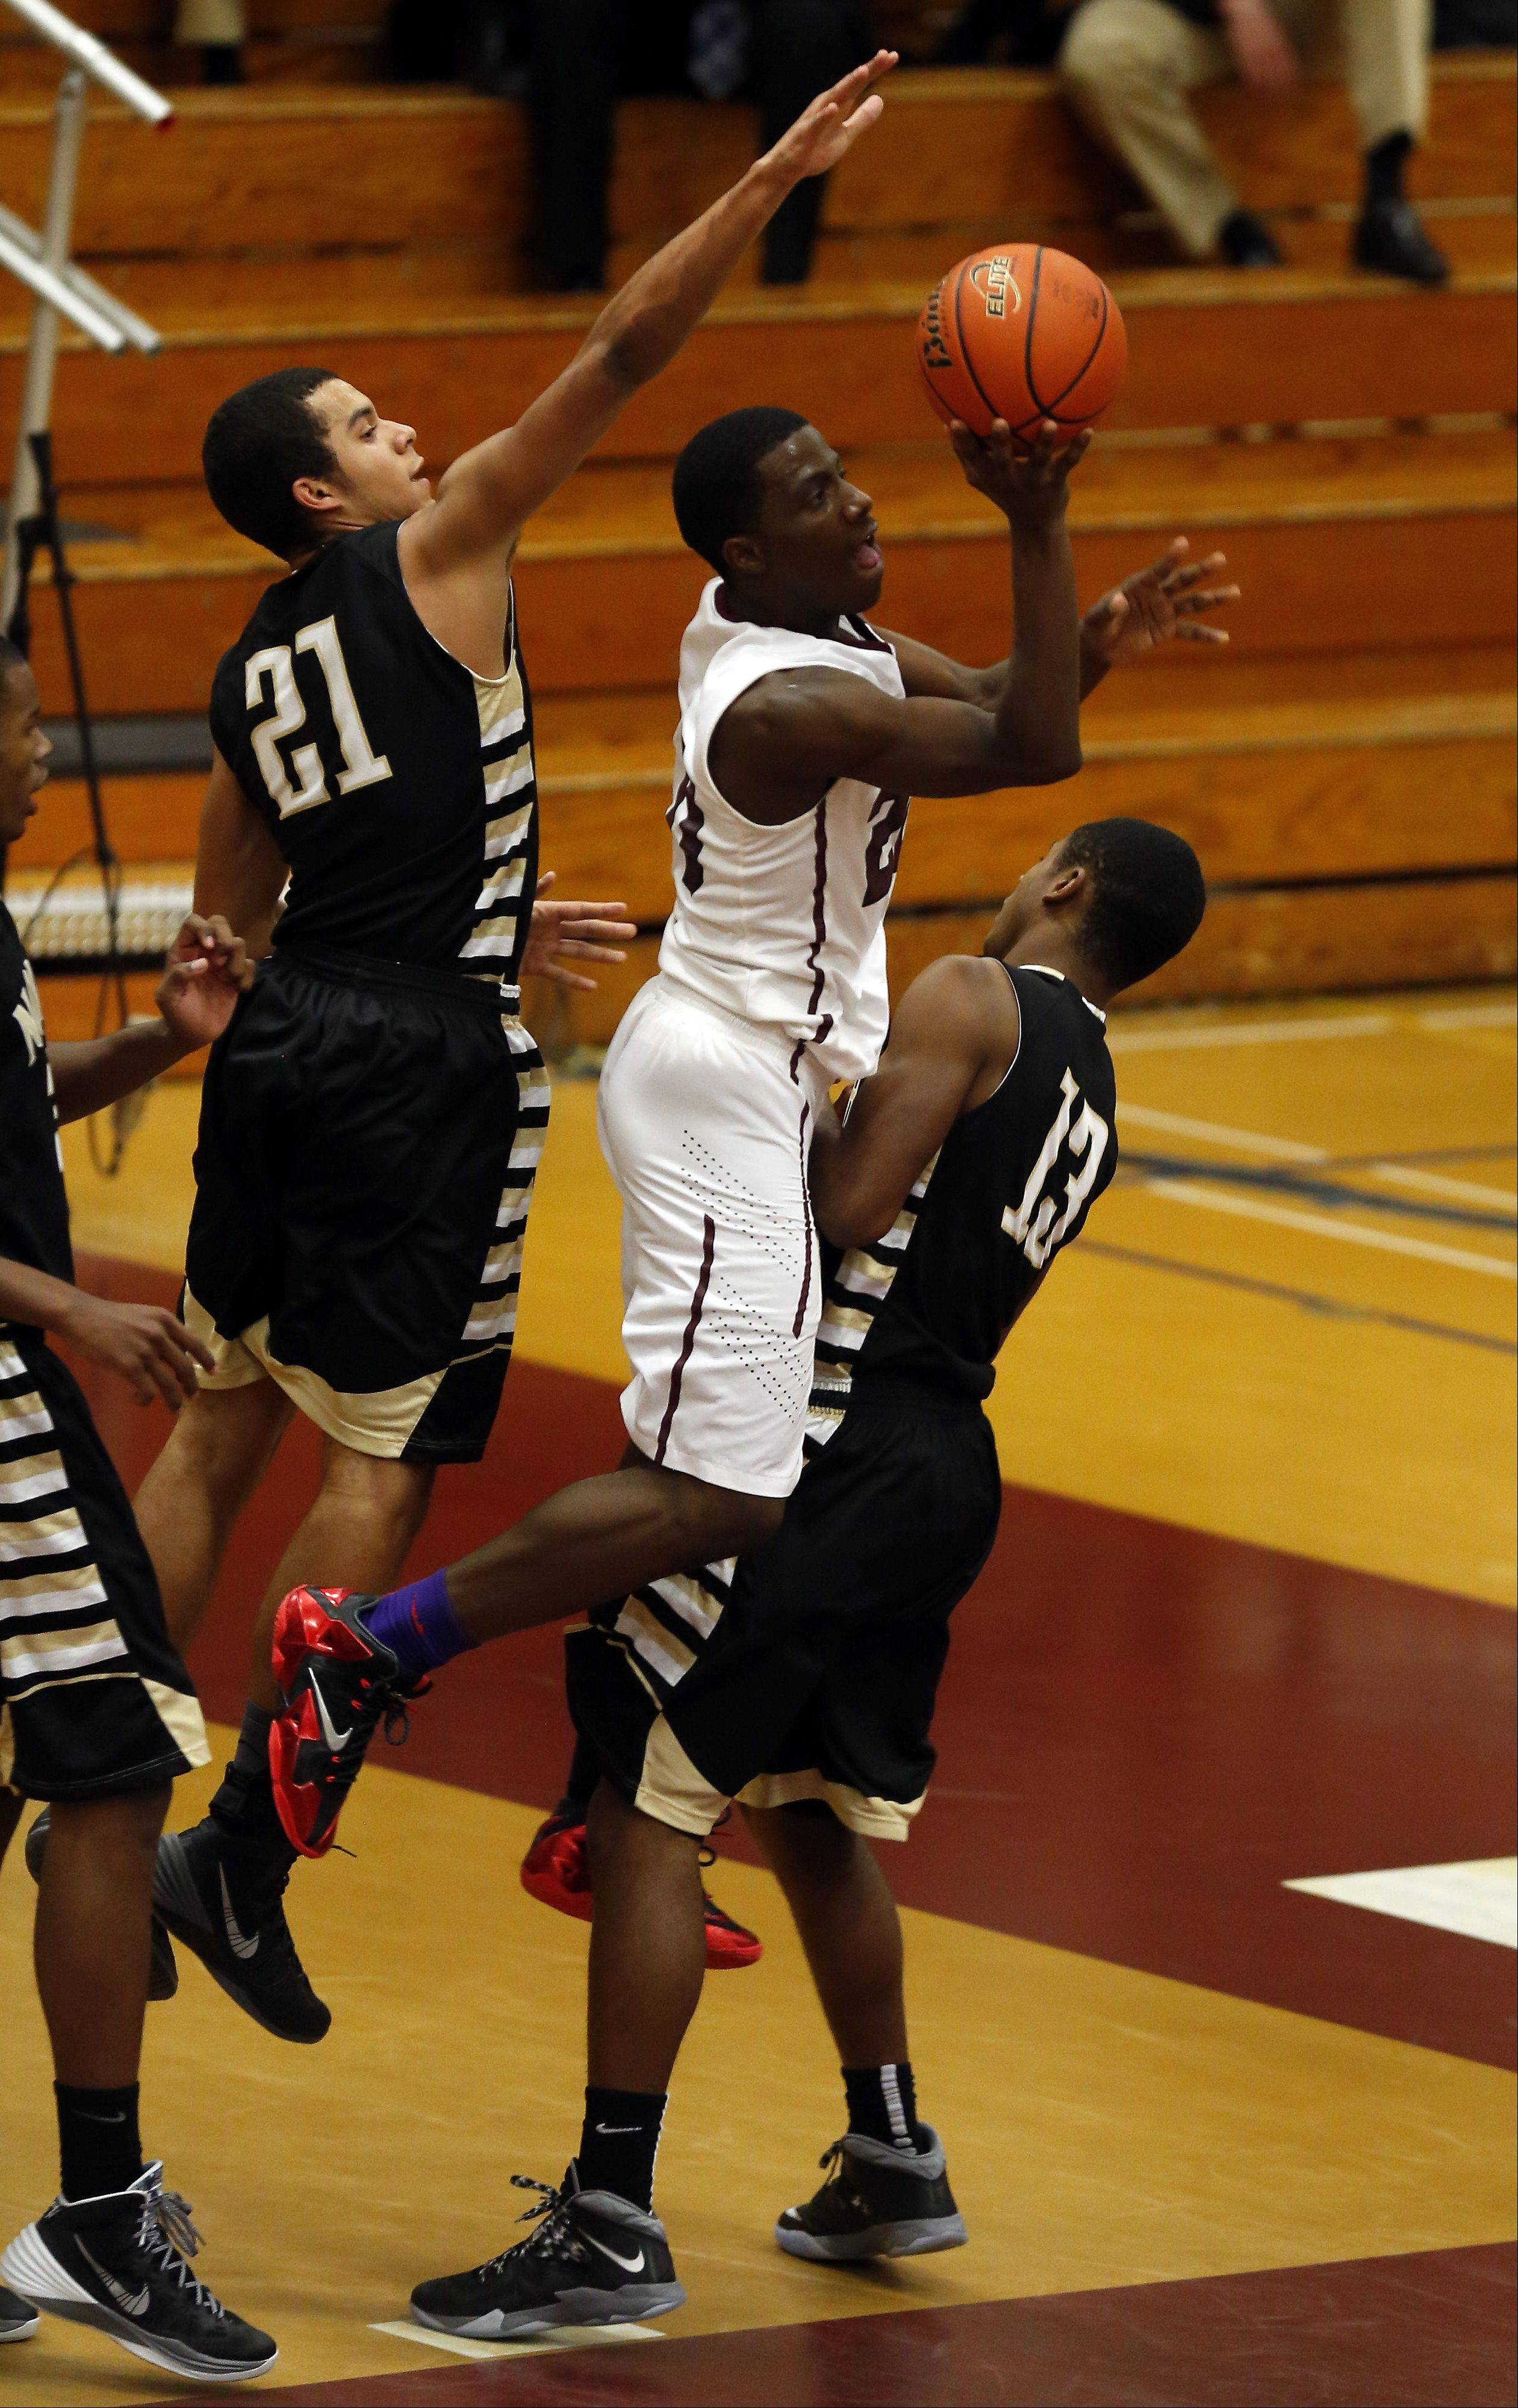 Elgin's Isaiah Butler goes strong to the hoop against Glenbard North's Kendall Holbert, left, and Justing Jackson, right, at the 39th Annual Elgin Boys Holiday Basketball Tournament at Elgin High School Saturday December 28, 2013.